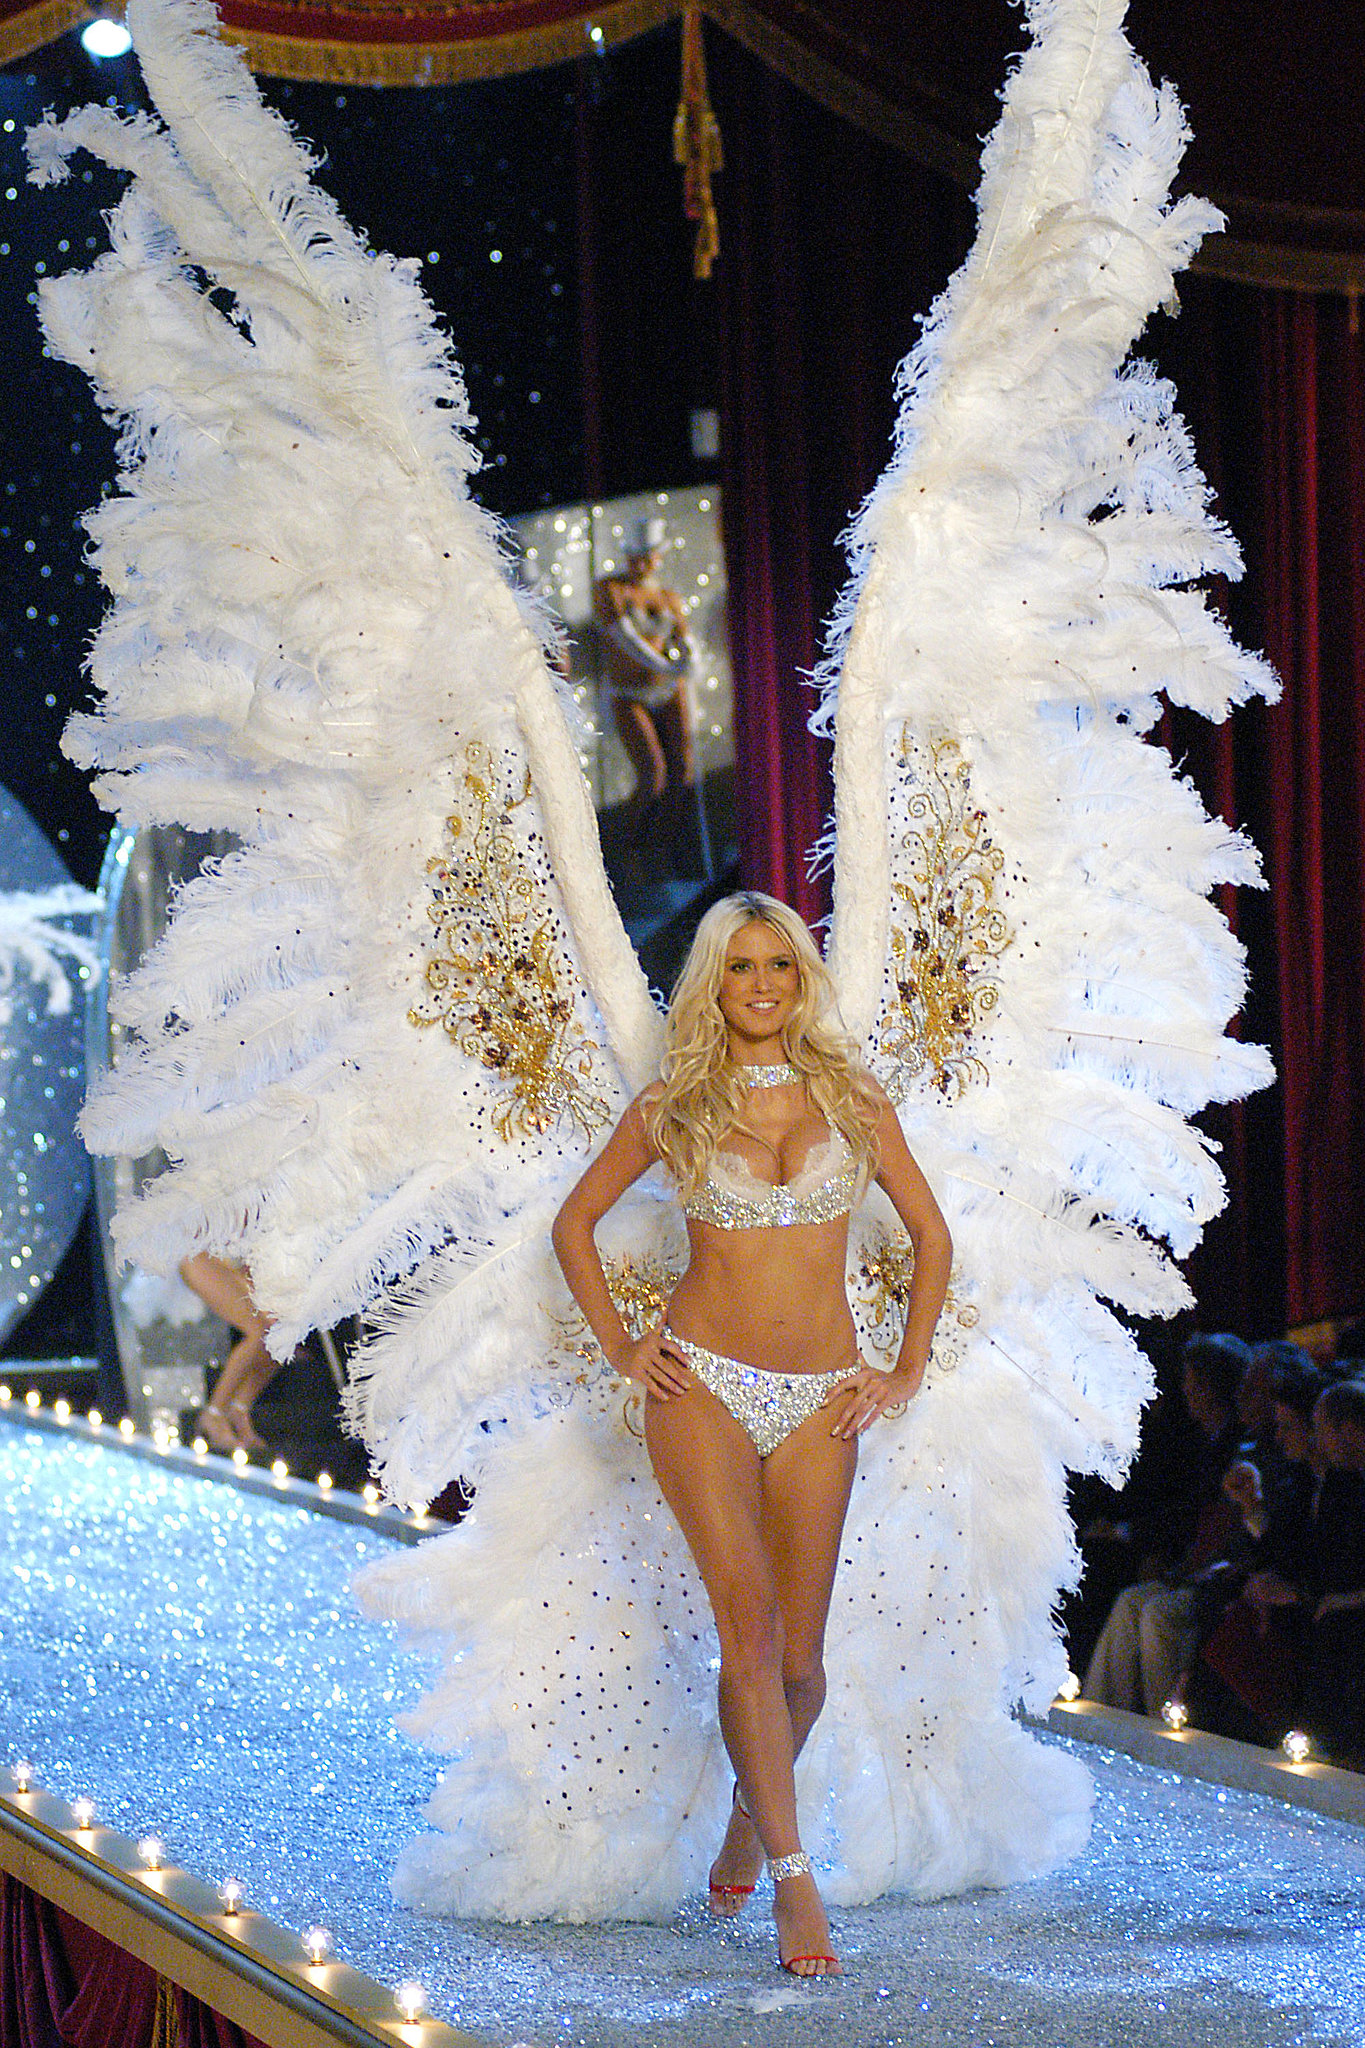 Heidi Klum looked downright ethereal in her wings during the 2003 runway show.